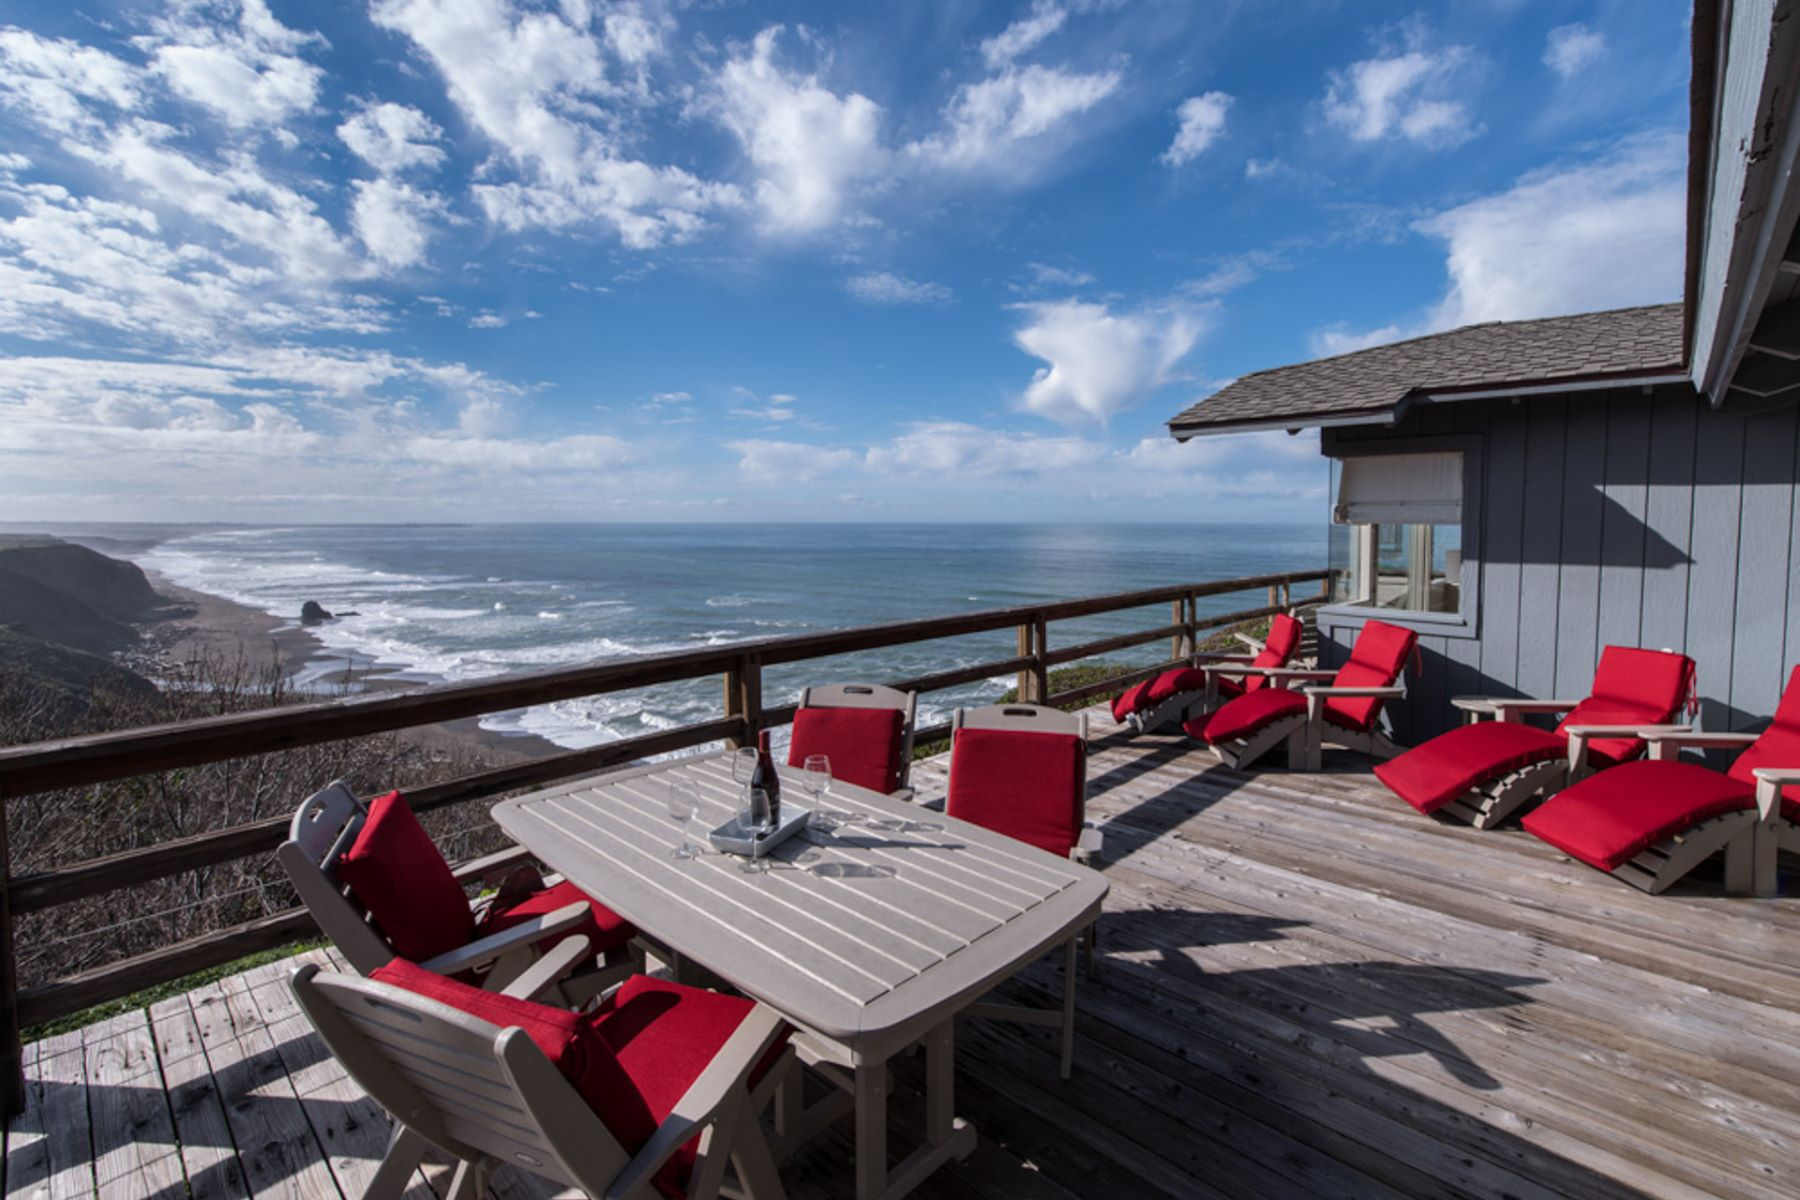 Single Family Homes for Sale at Stunning Ocean View Home, The Prevo 15020 Navarro Way Manchester, California 95459 United States